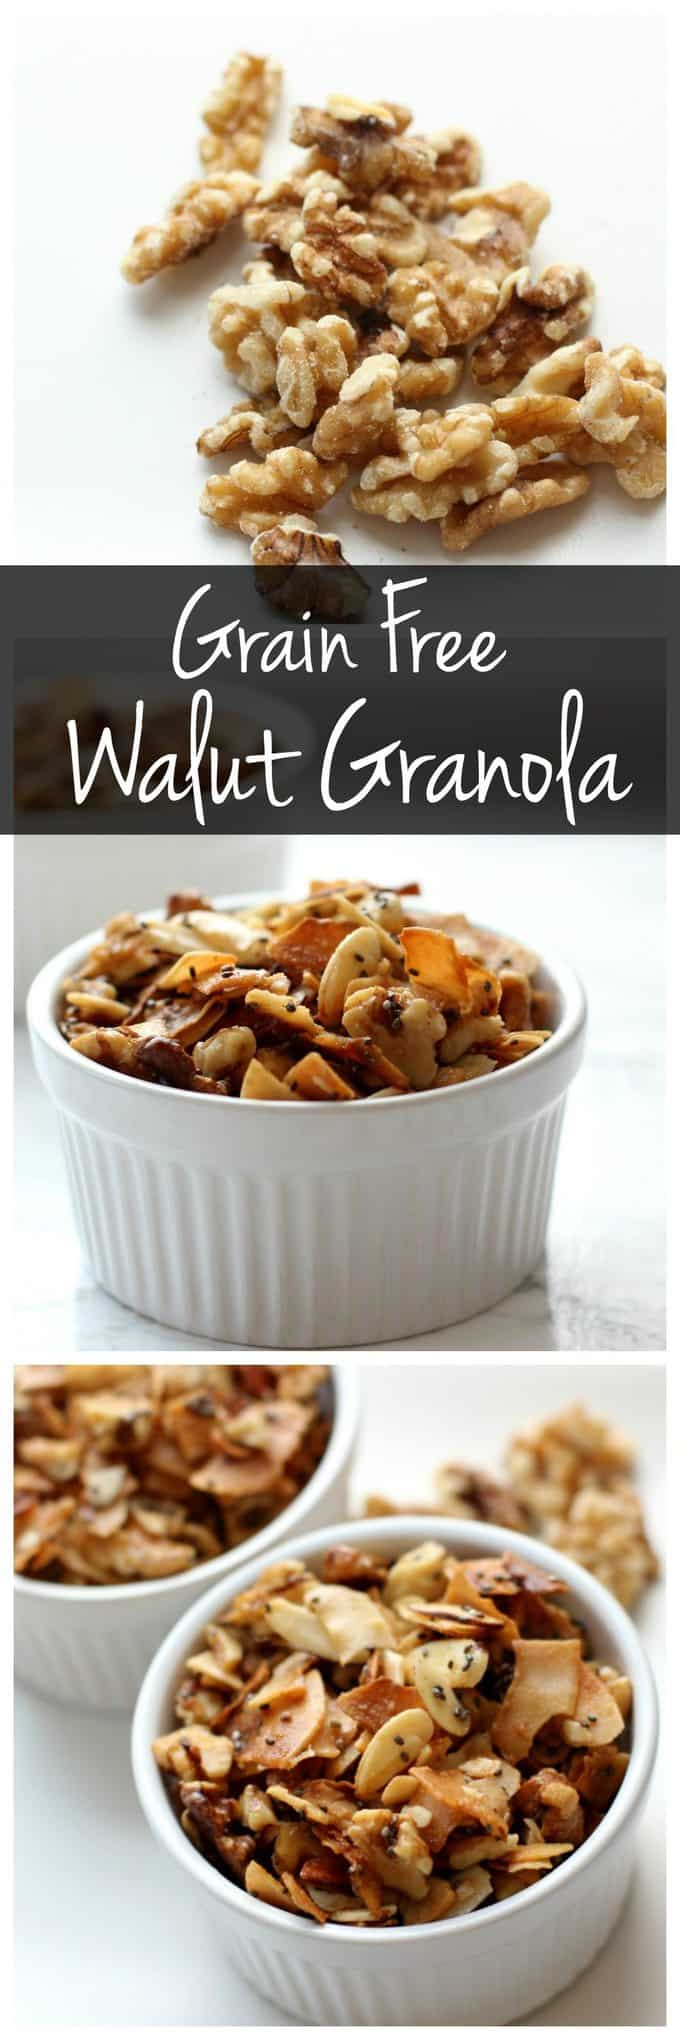 Grain Free Walnut Granola